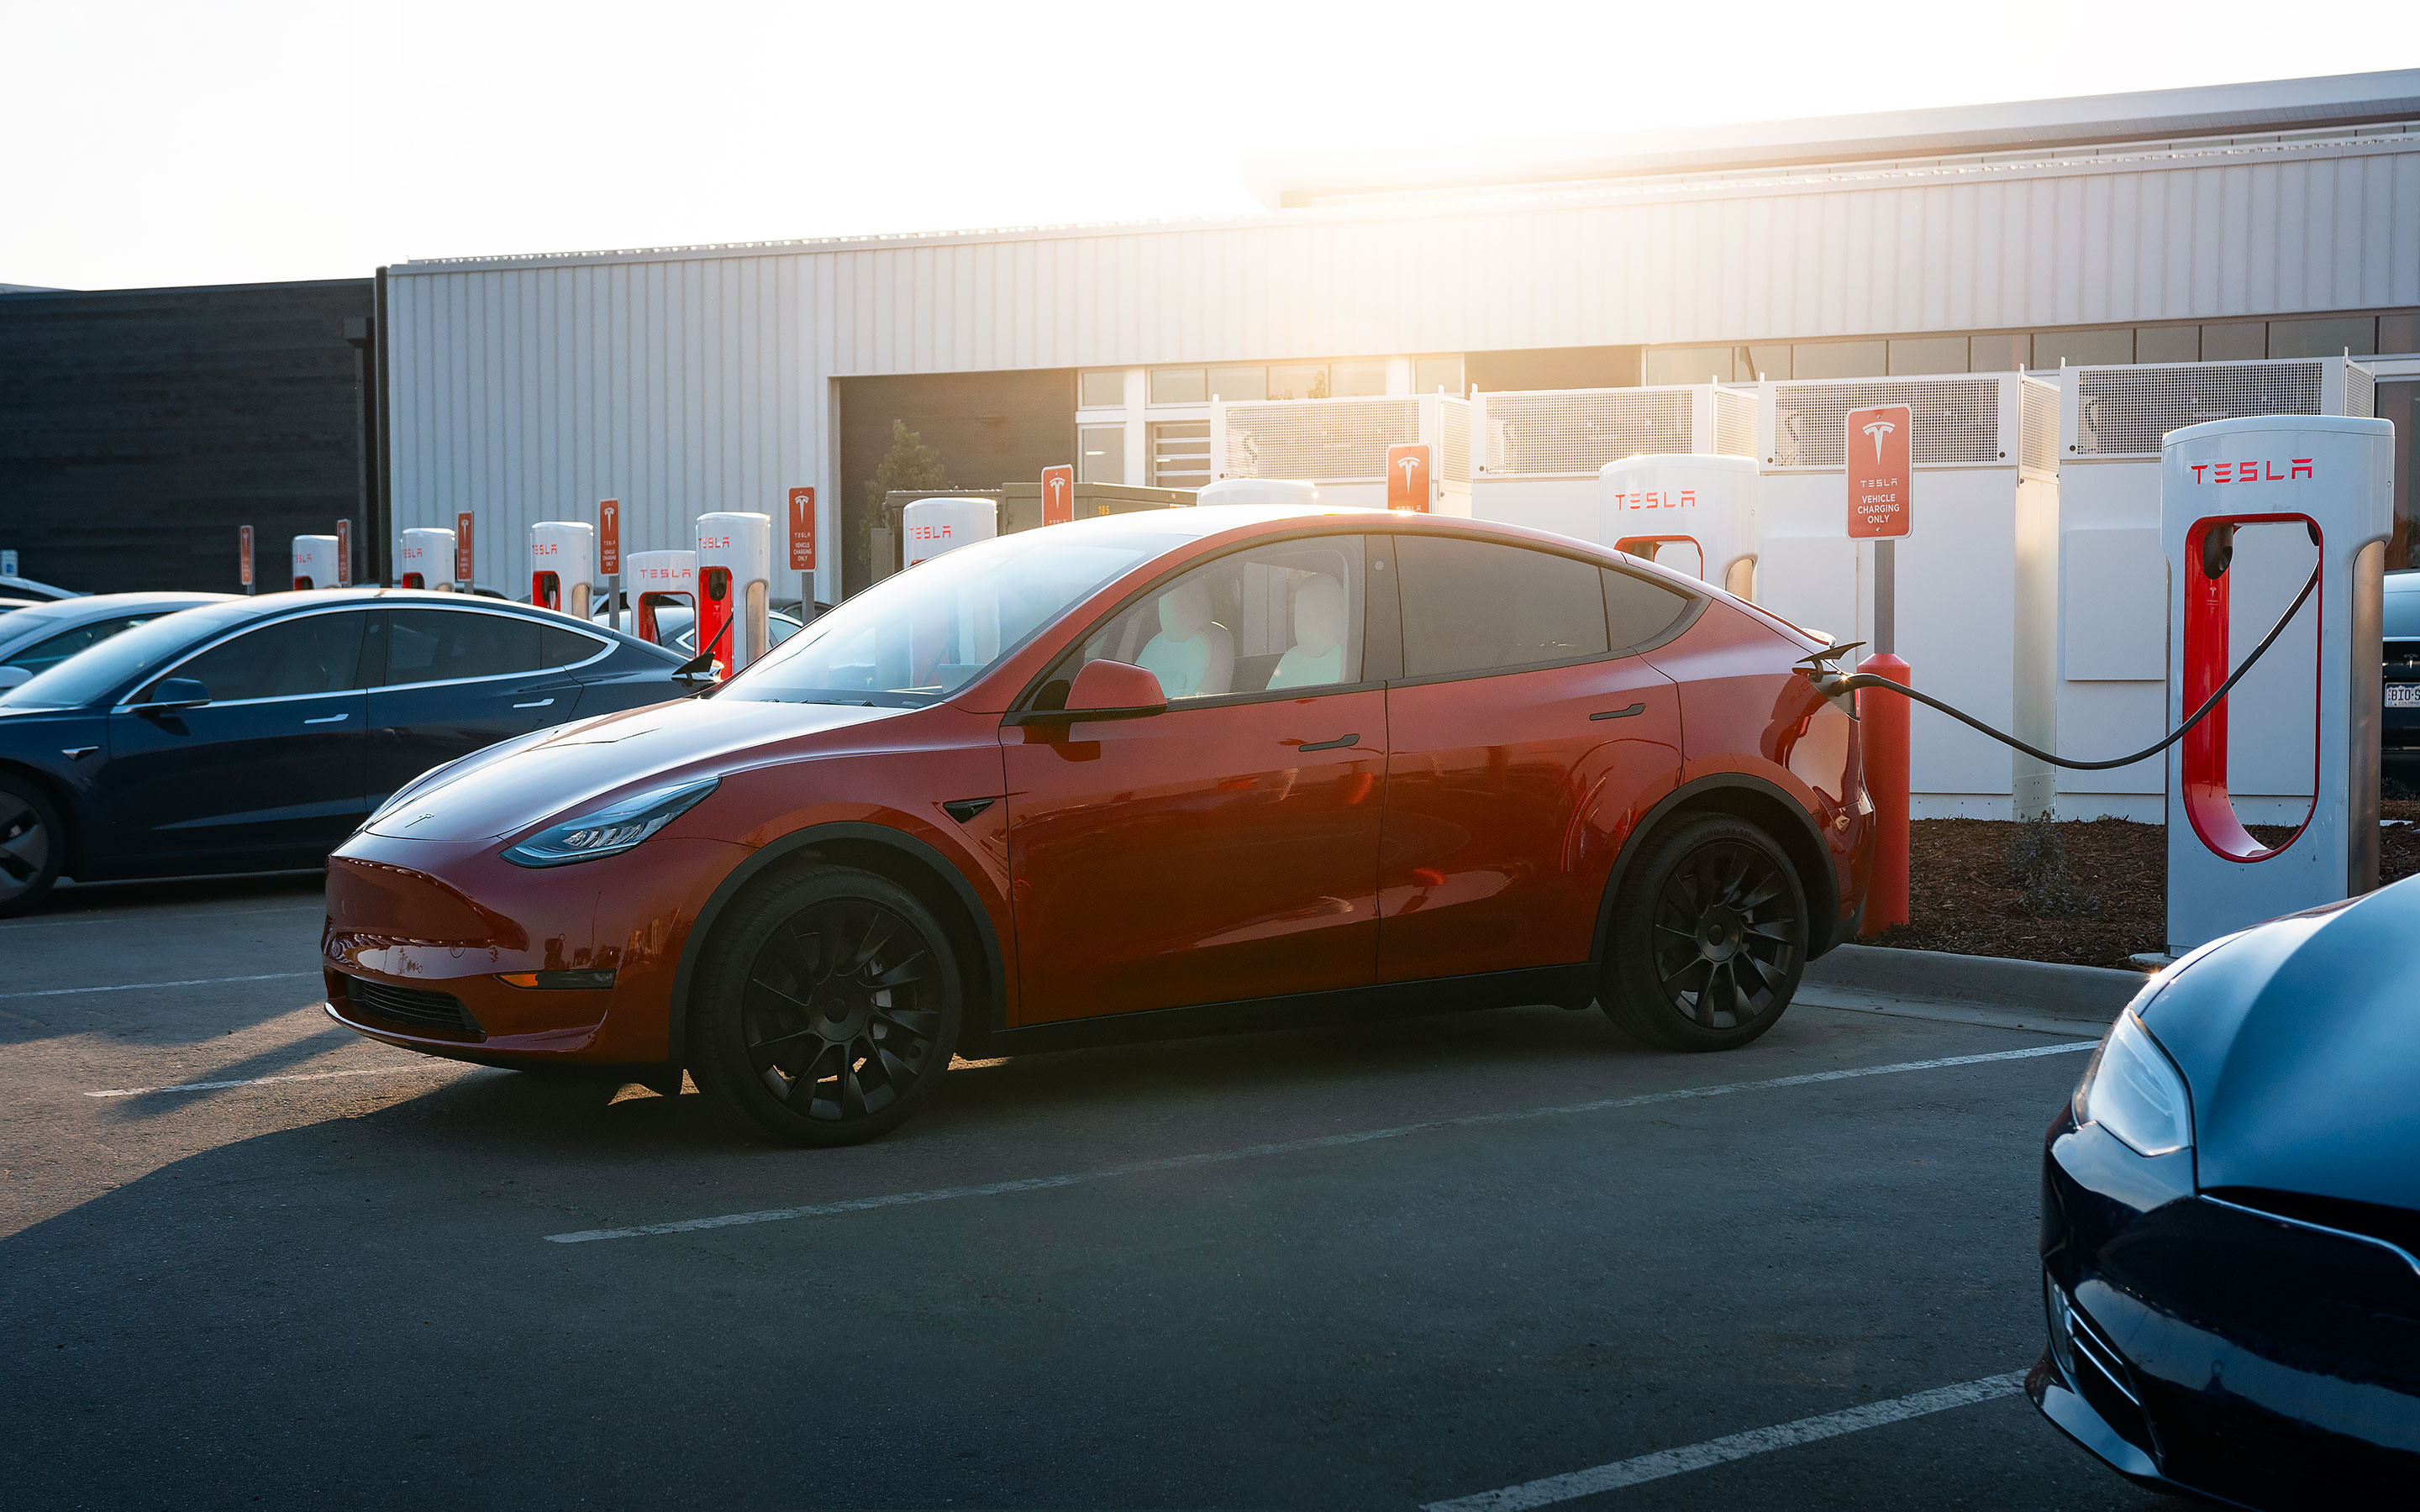 Red Model Y charging via Supercharger in a parking lot